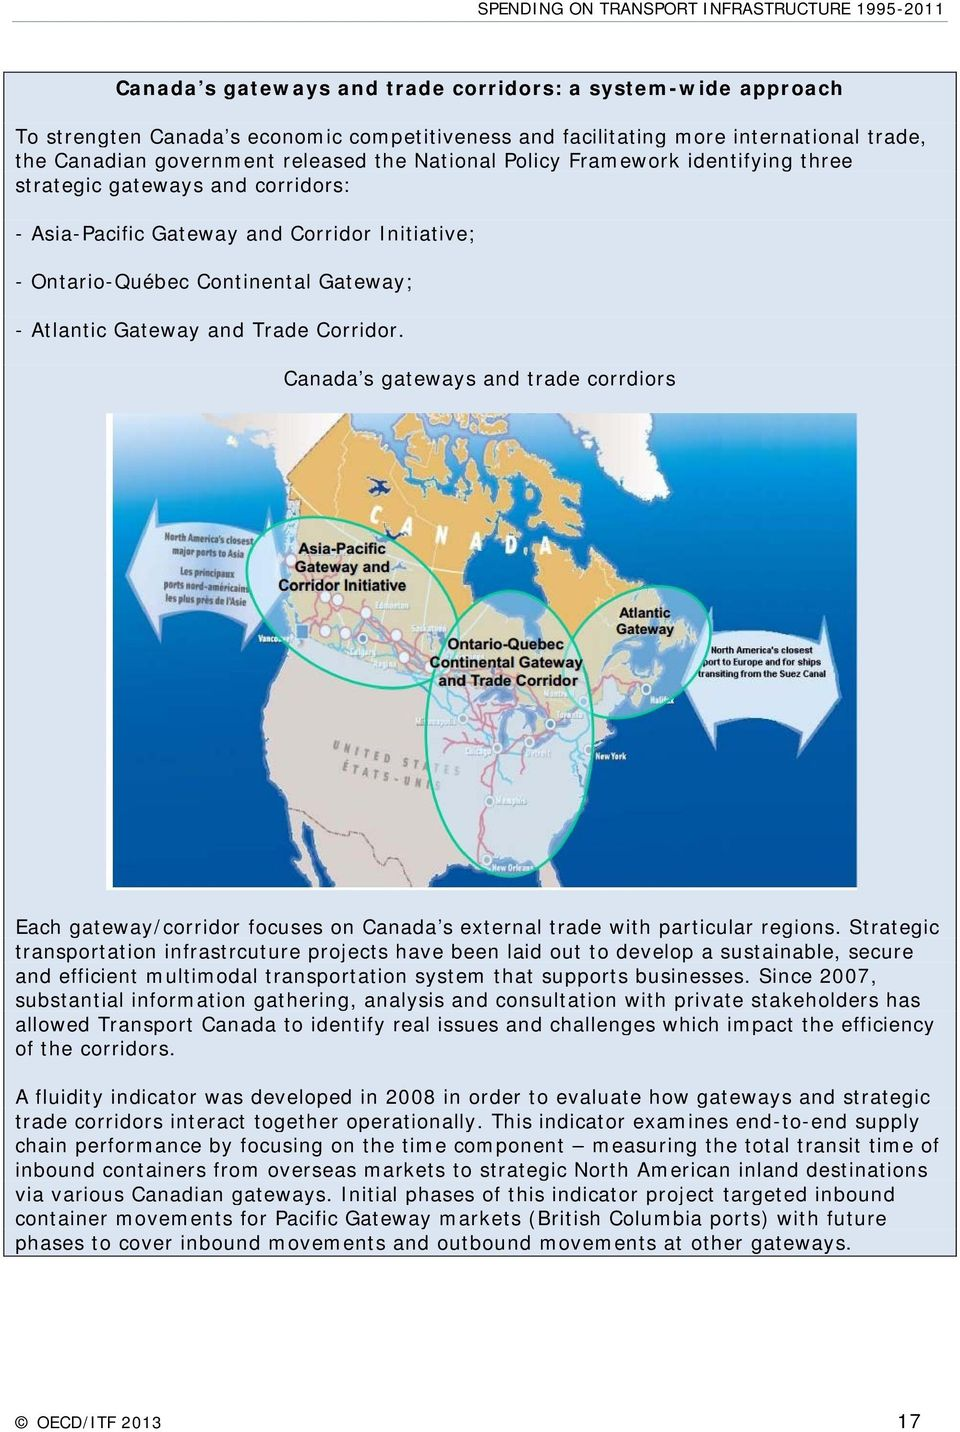 Canada s gateways and trade corrdiors Each gateway/corridor focuses on Canada s external trade with particular regions.